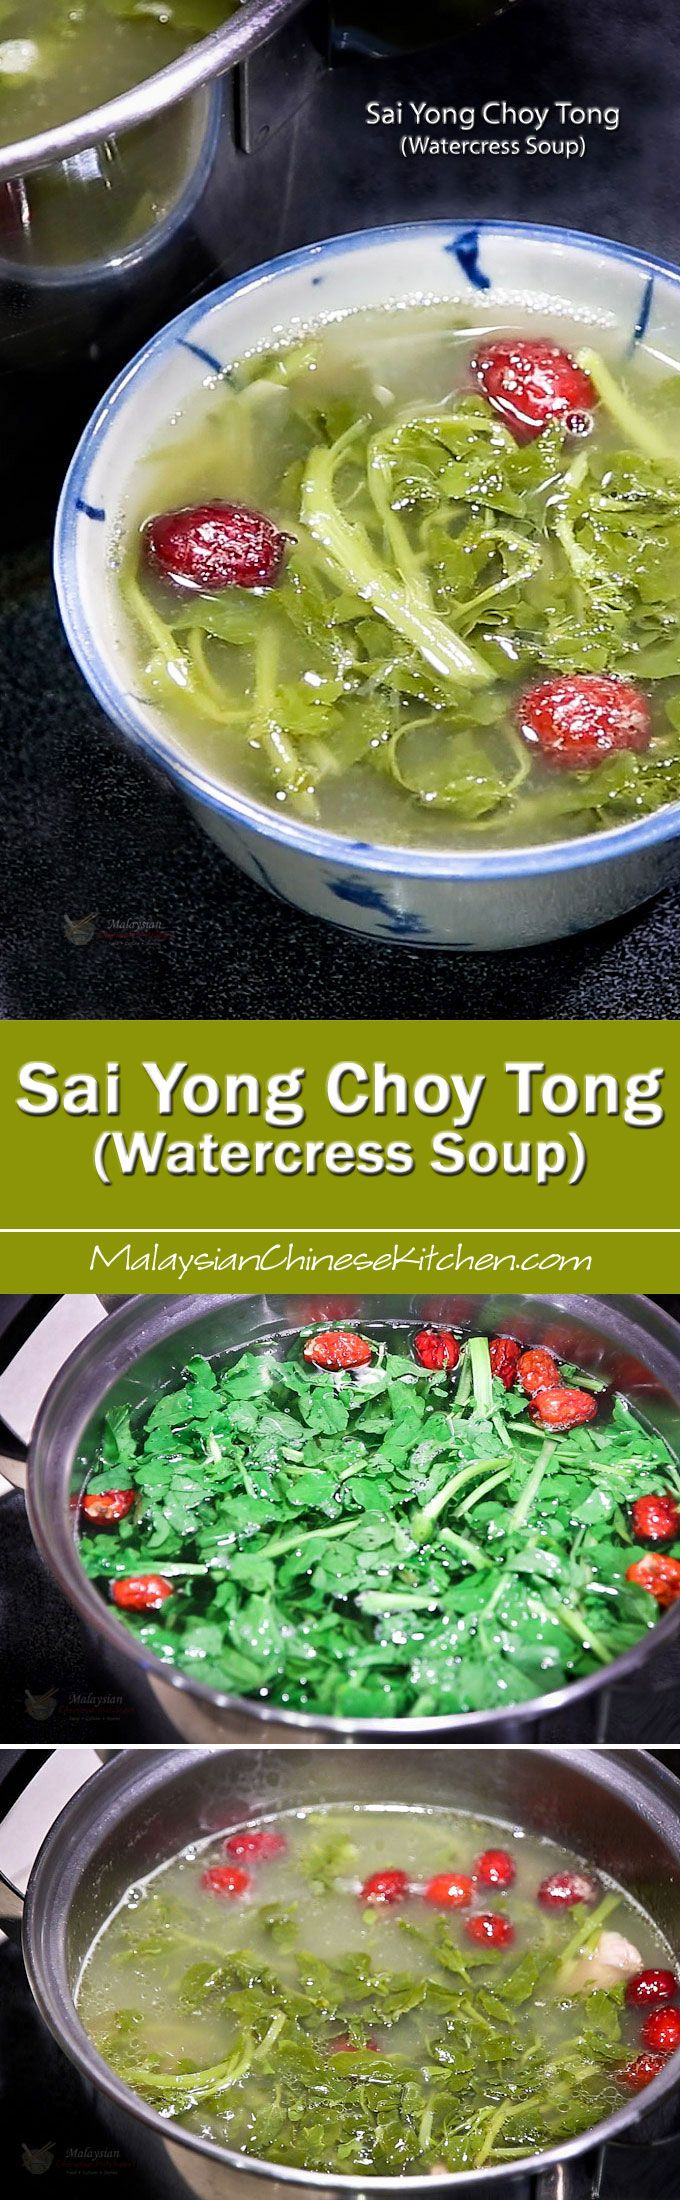 Sai Yong Choy Tong (Watercress Soup) is a slow boil, clear, and nourishing soup. It is very popular among the Malaysian Chinese. | MalaysianChineseKitchen.com